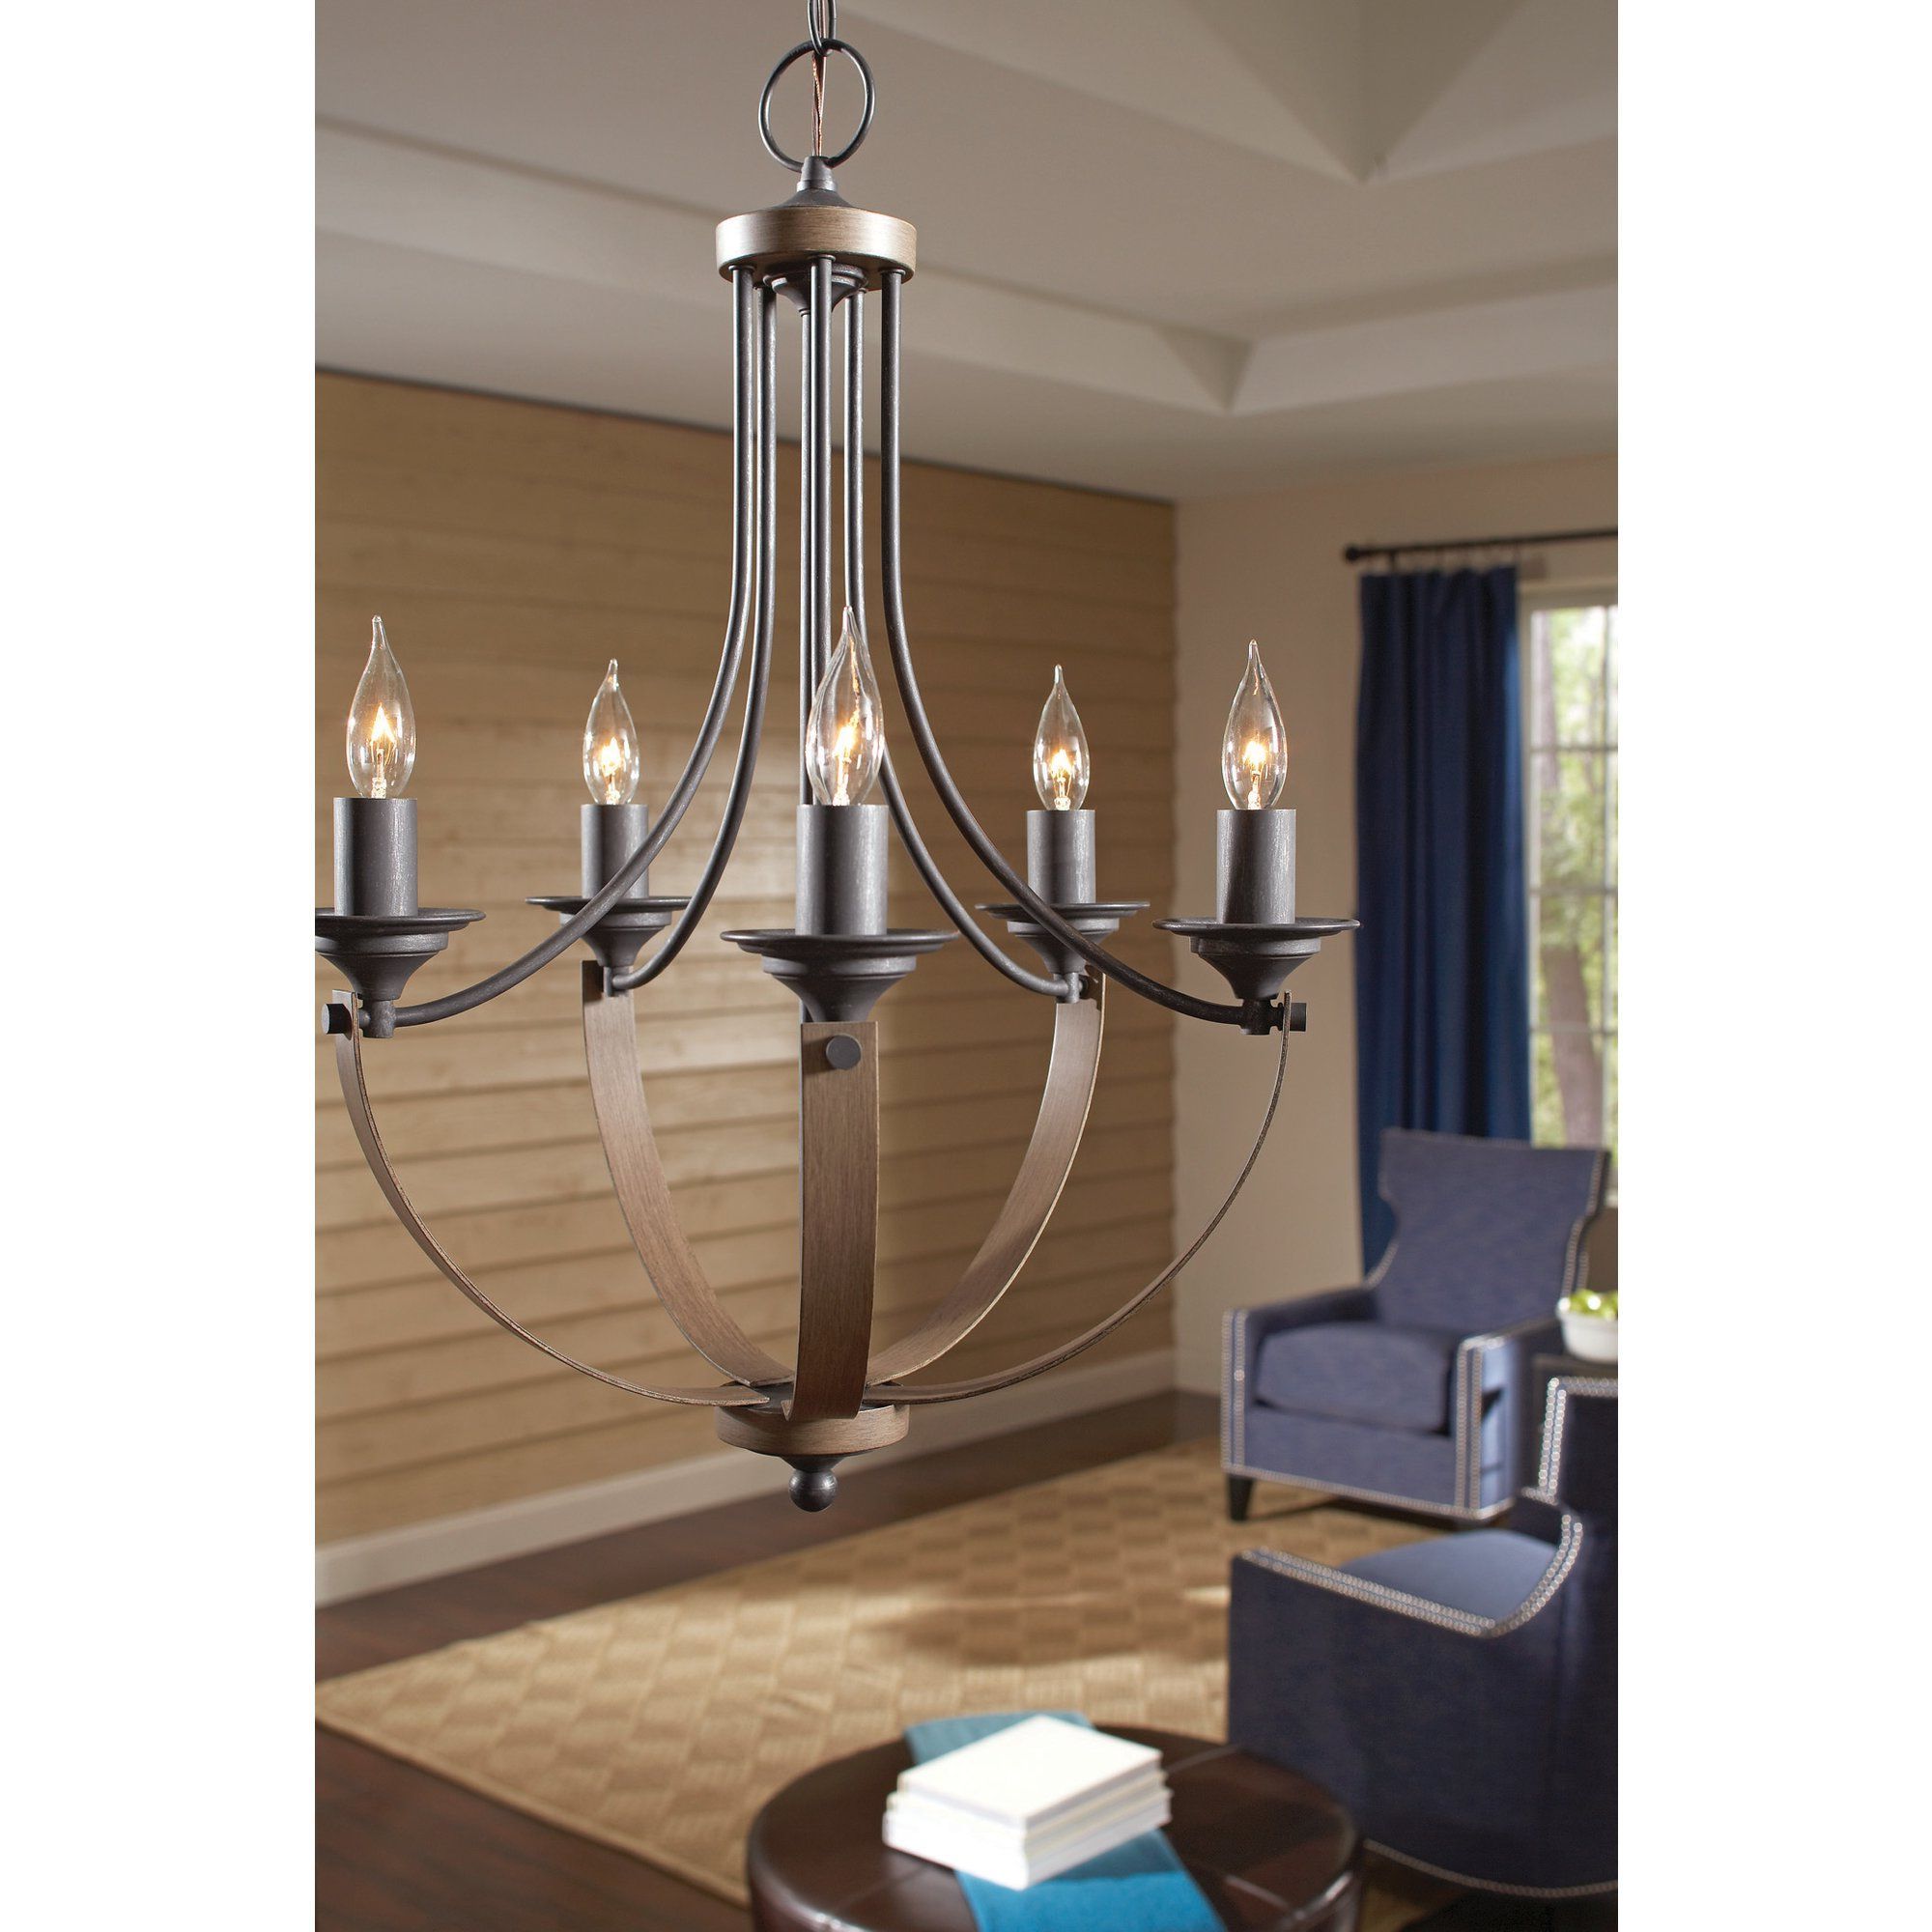 Preferred Armande Candle Style Chandeliers Intended For 25 Camilla 9 Light Candle Style Chandelier – Divineducation (View 18 of 25)